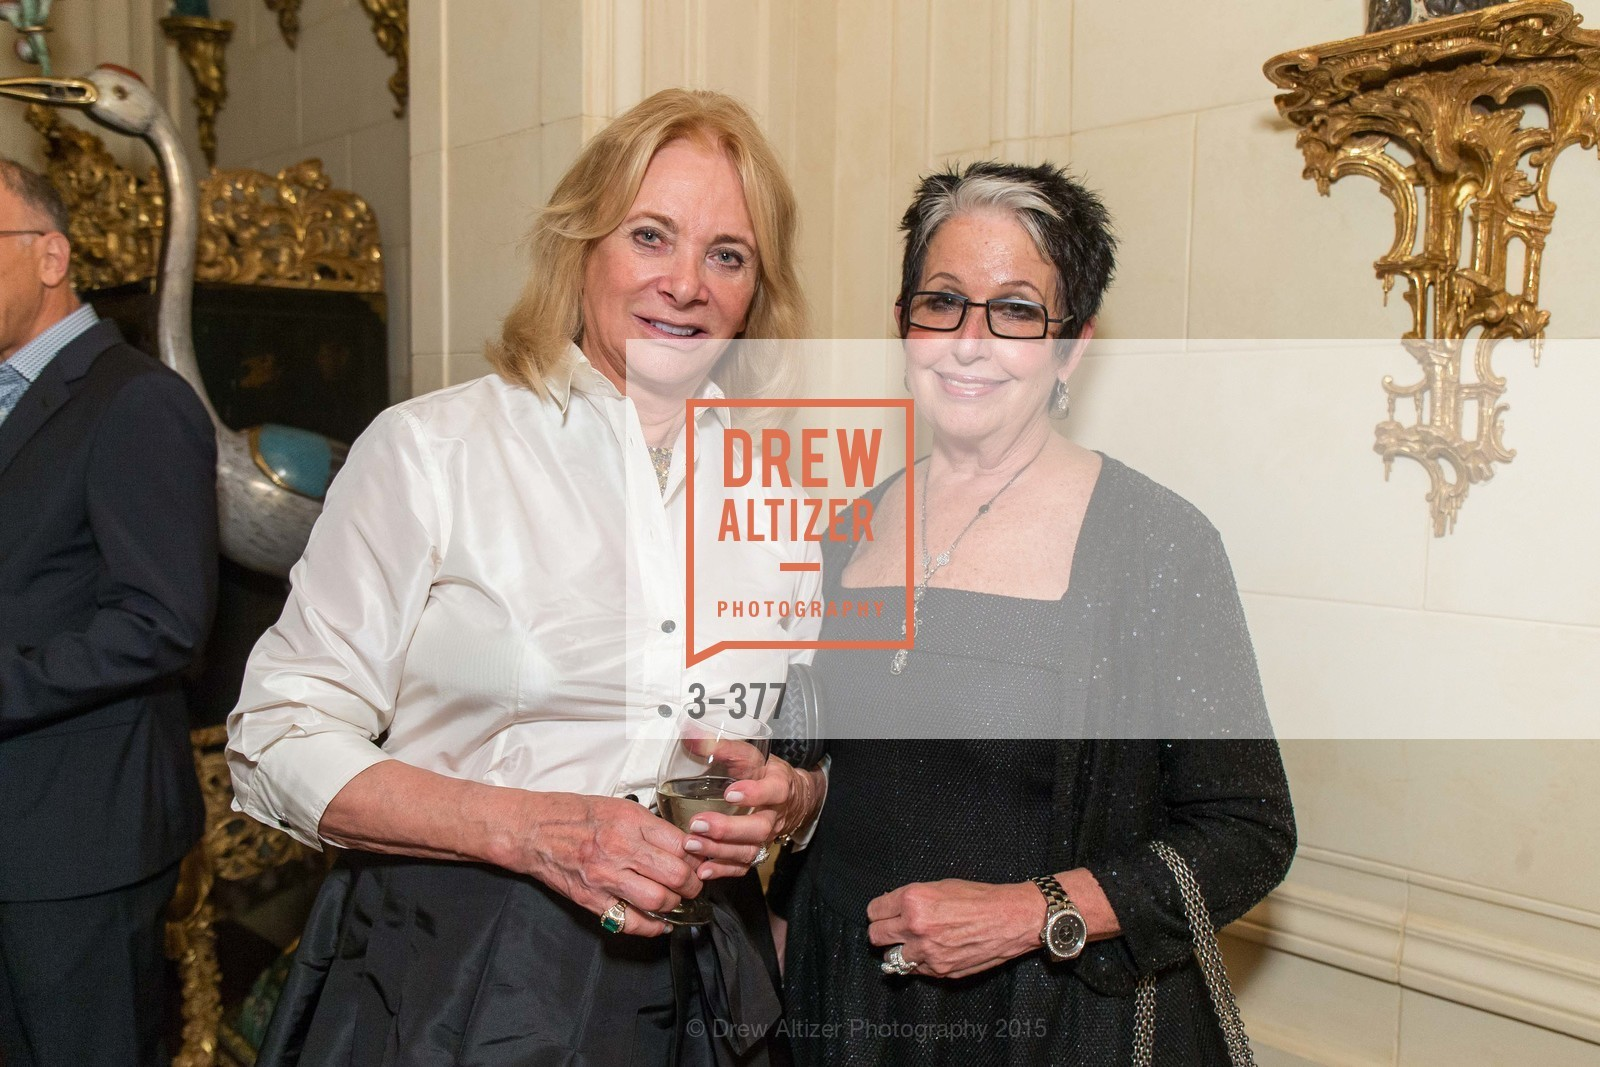 Sarah Hill, Karen Kubin, Ann and Gordon Getty Host SF Conservatory of Music with Marilyn Horne, Private Residence, October 15th, 2015,Drew Altizer, Drew Altizer Photography, full-service agency, private events, San Francisco photographer, photographer california